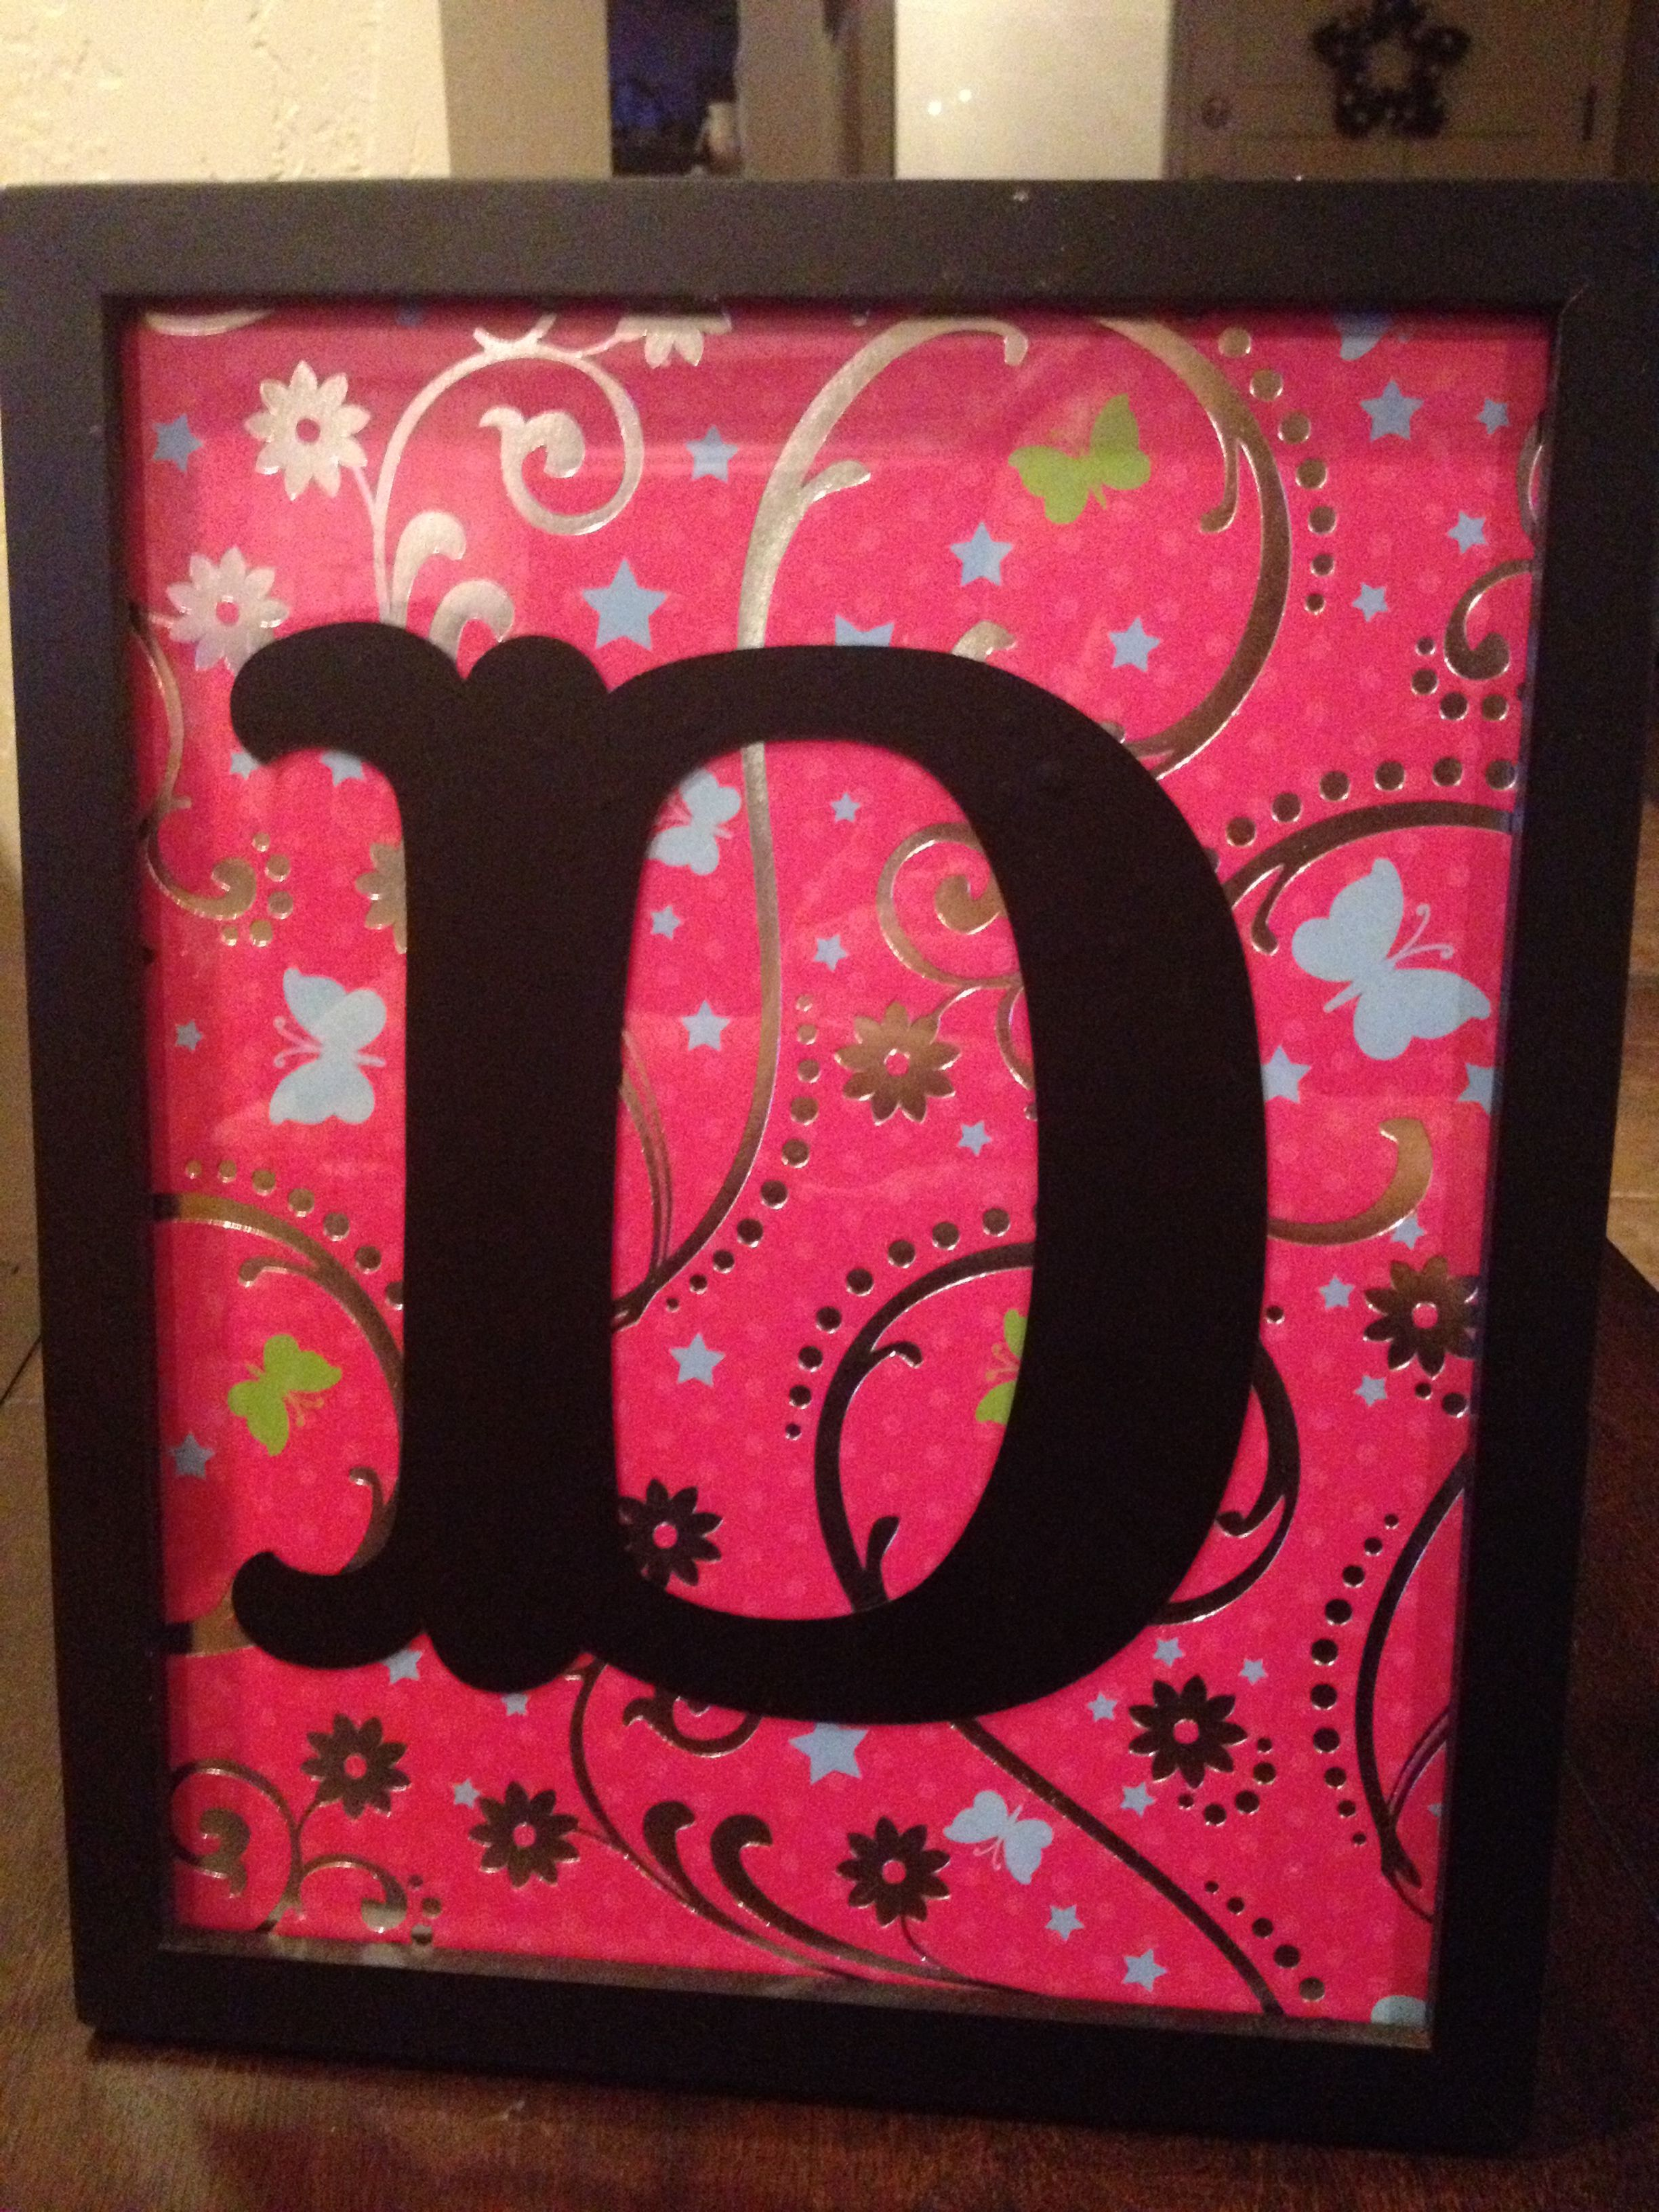 Initial frame 8x10 frame with a vinyl letter cut out by cricut initial frame 8x10 frame with a vinyl letter cut out by cricut spiritdancerdesigns Gallery